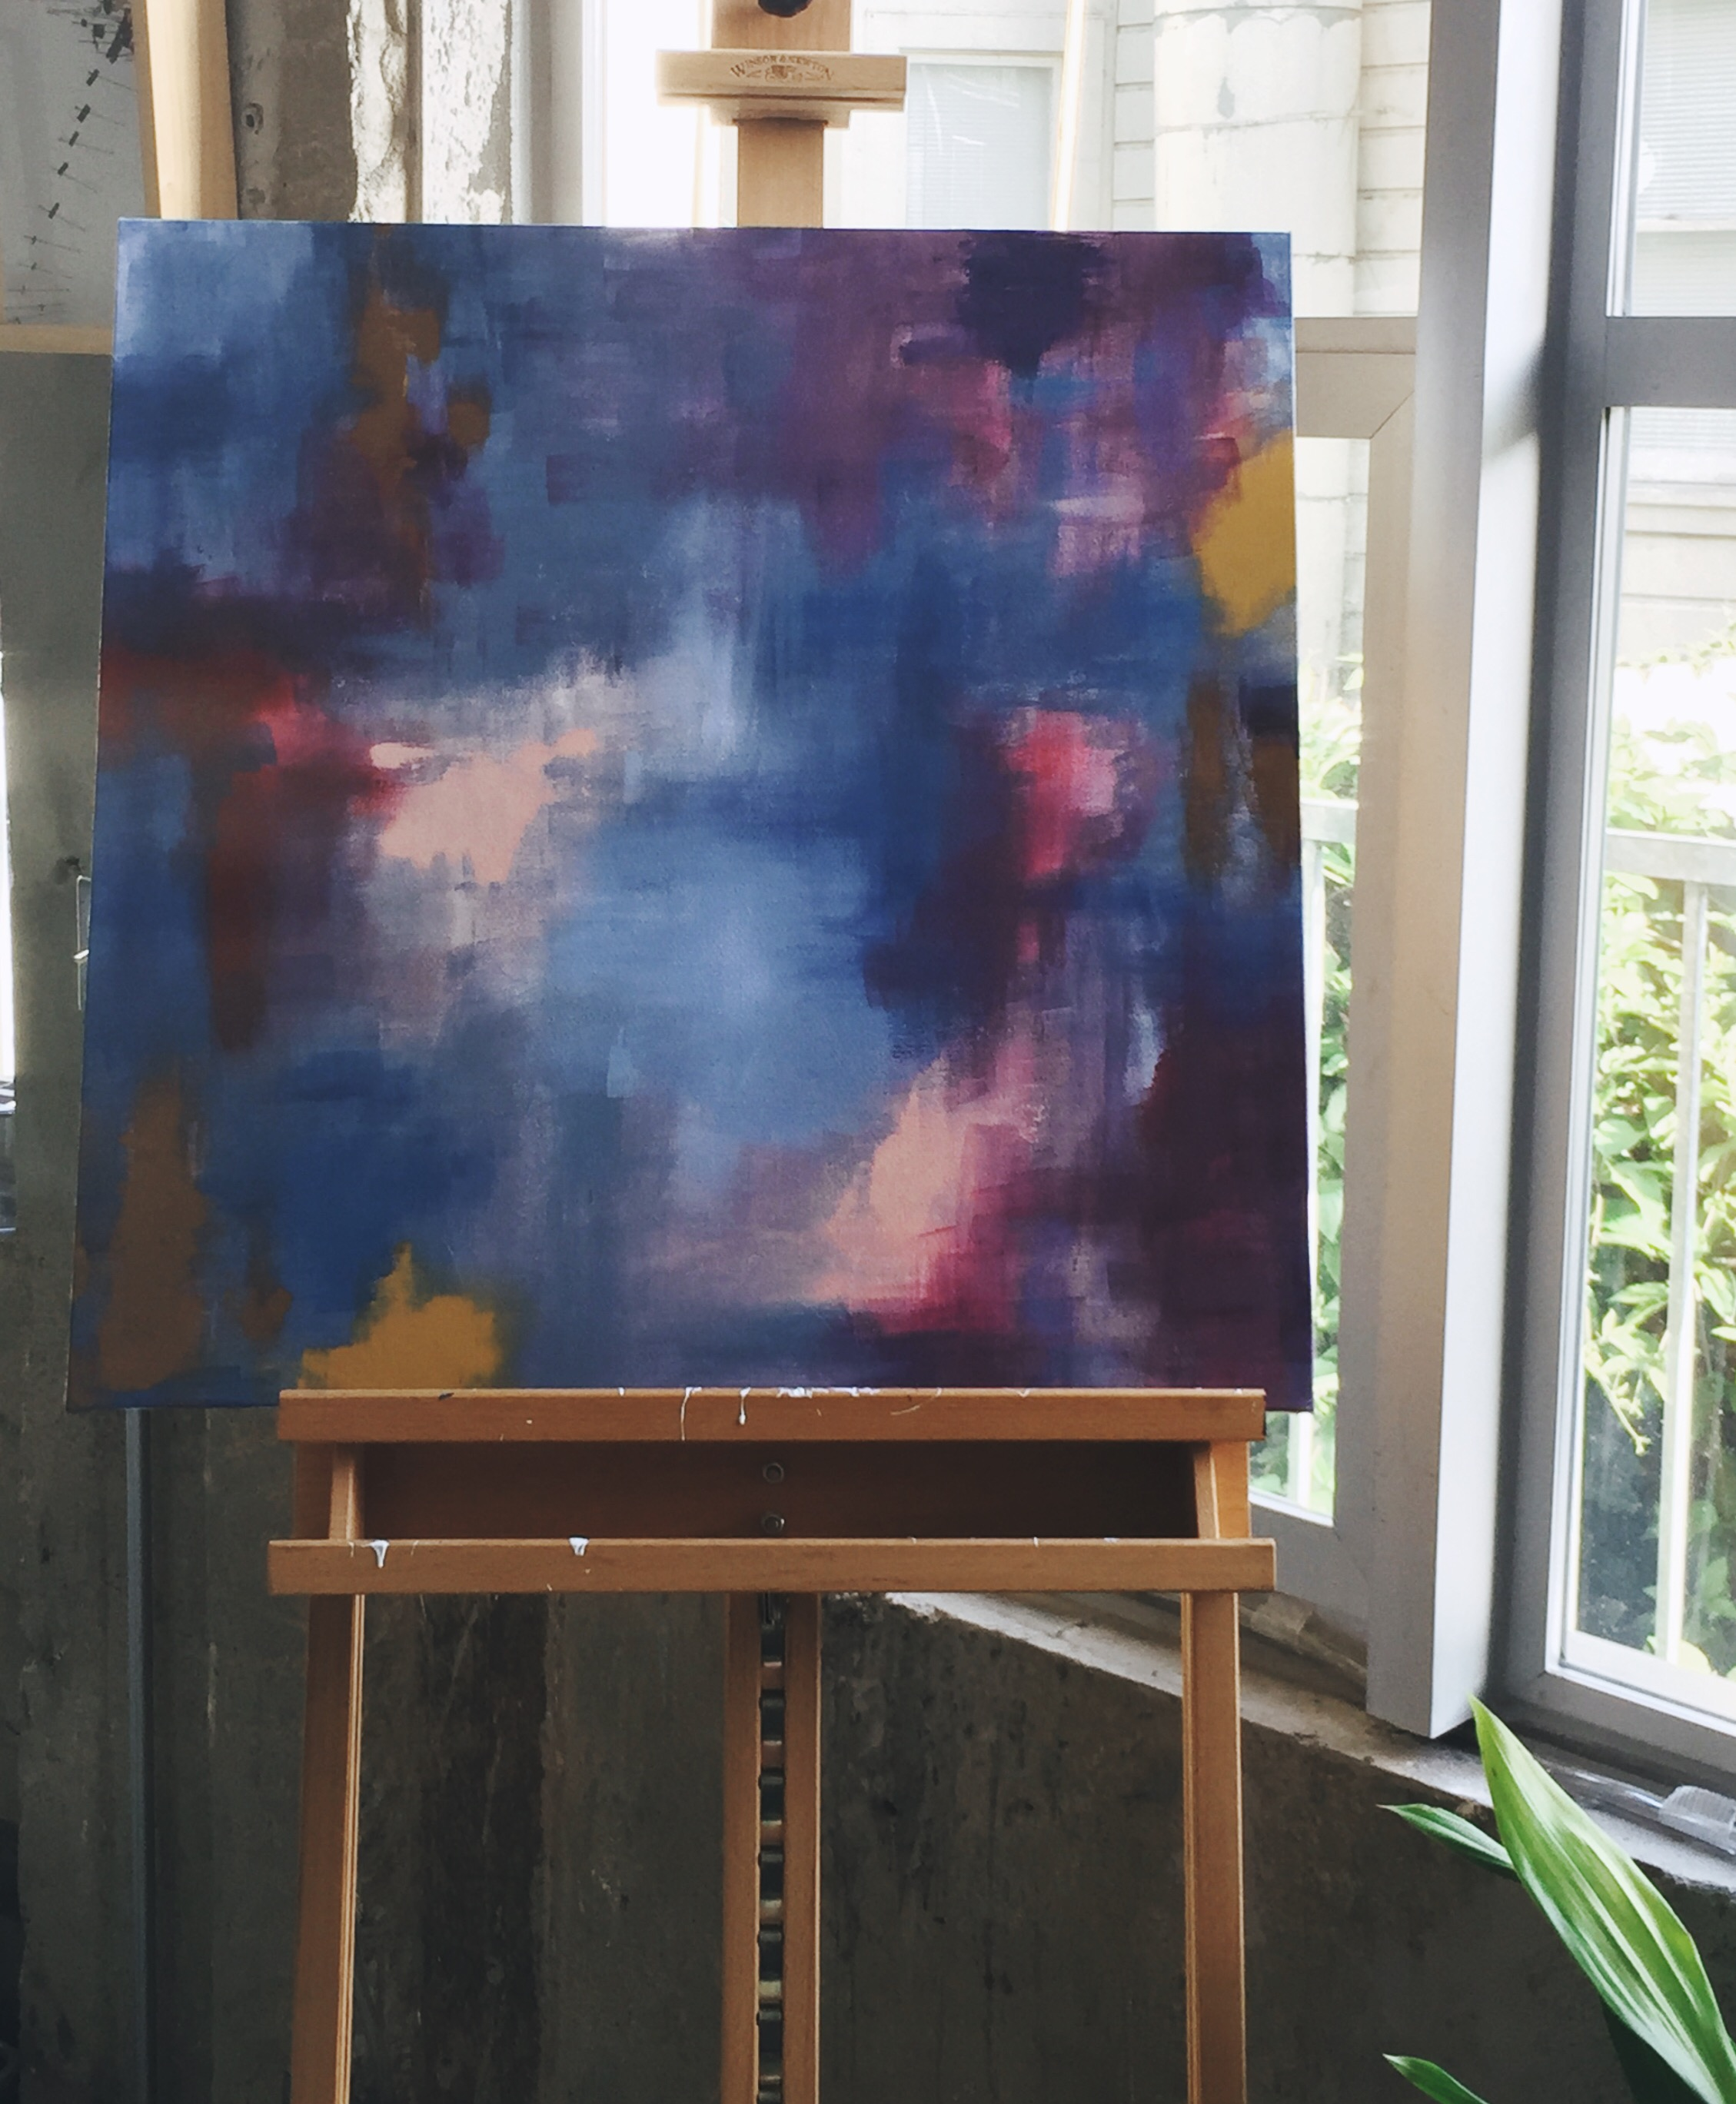 Work in progress. Photograph taken at the south end of the kitchen/studio.